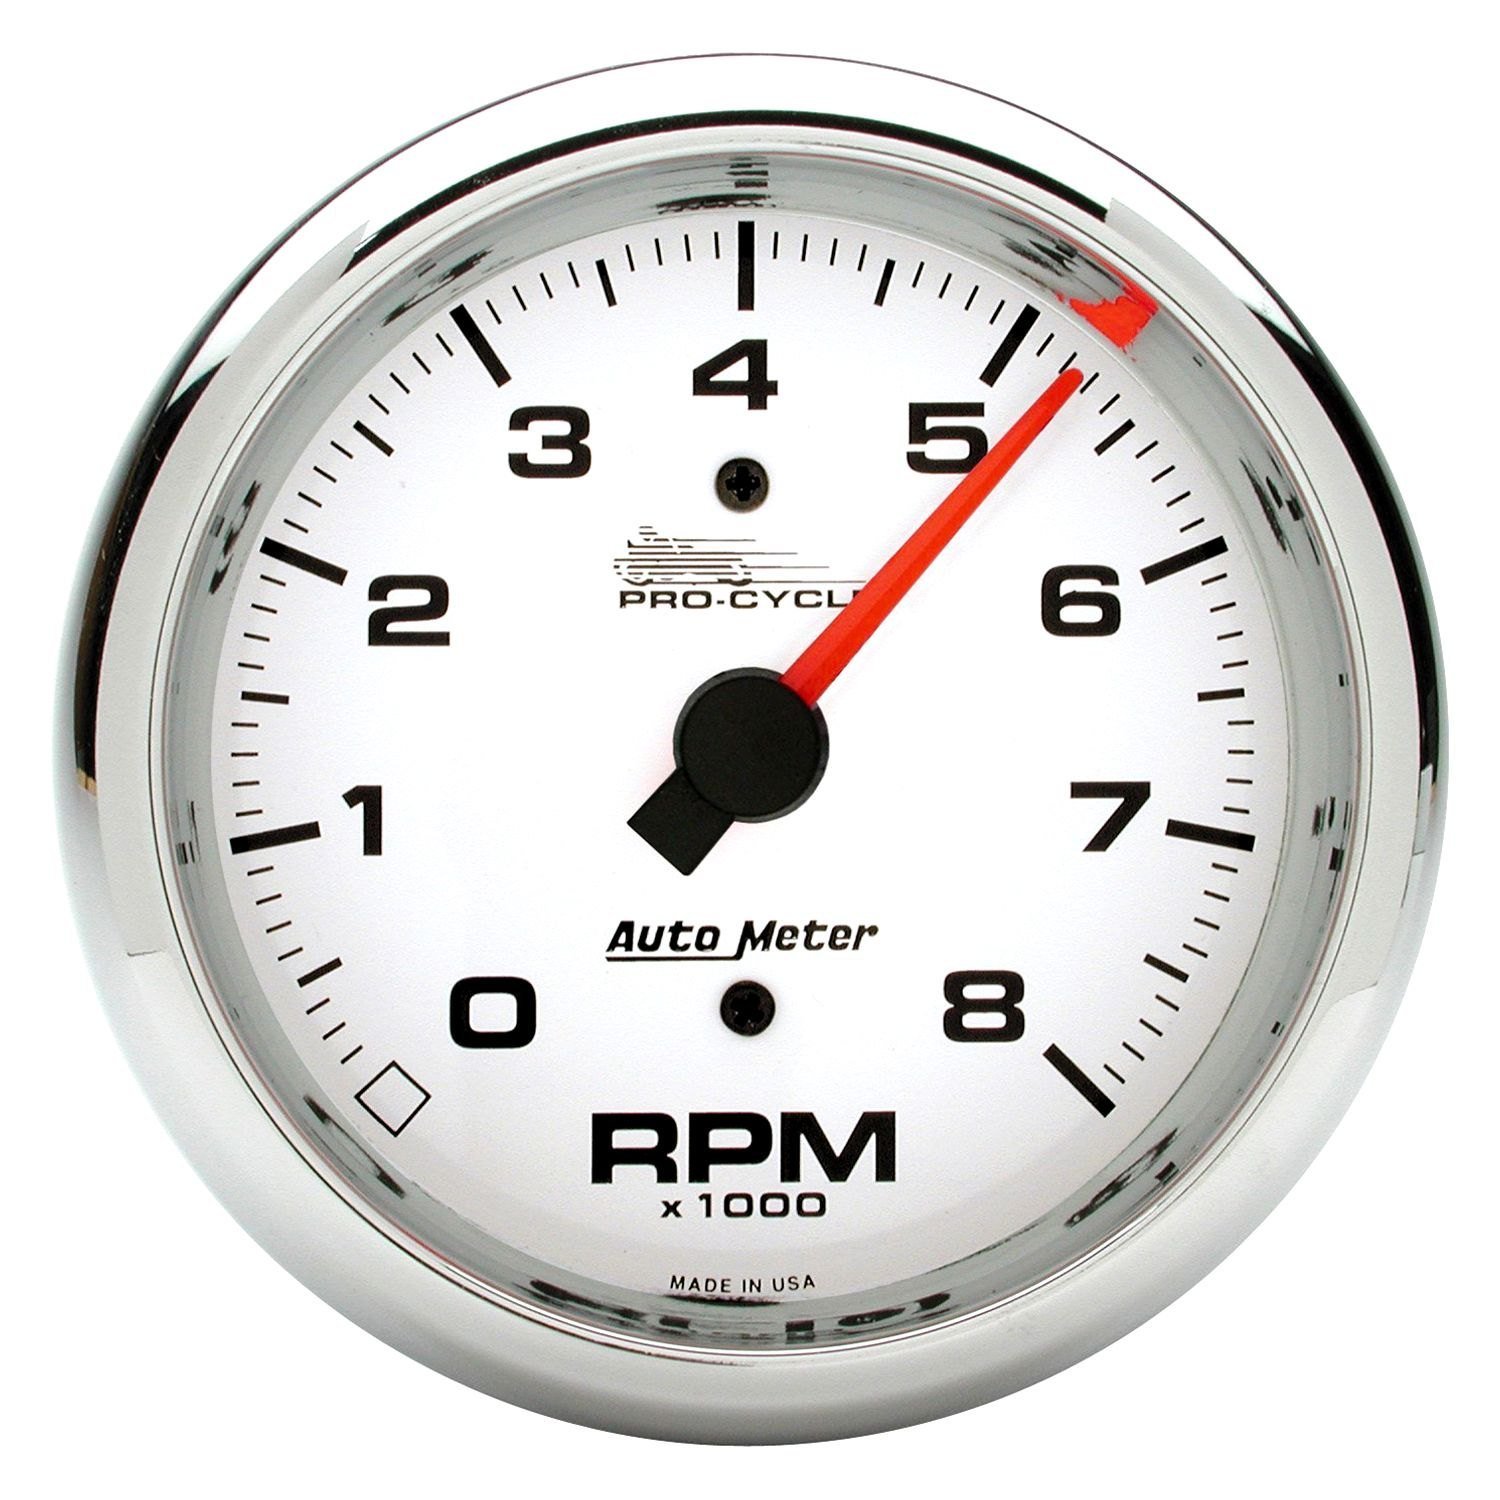 Auto Meter Tach Wiring Pro Cycle | Wiring Library